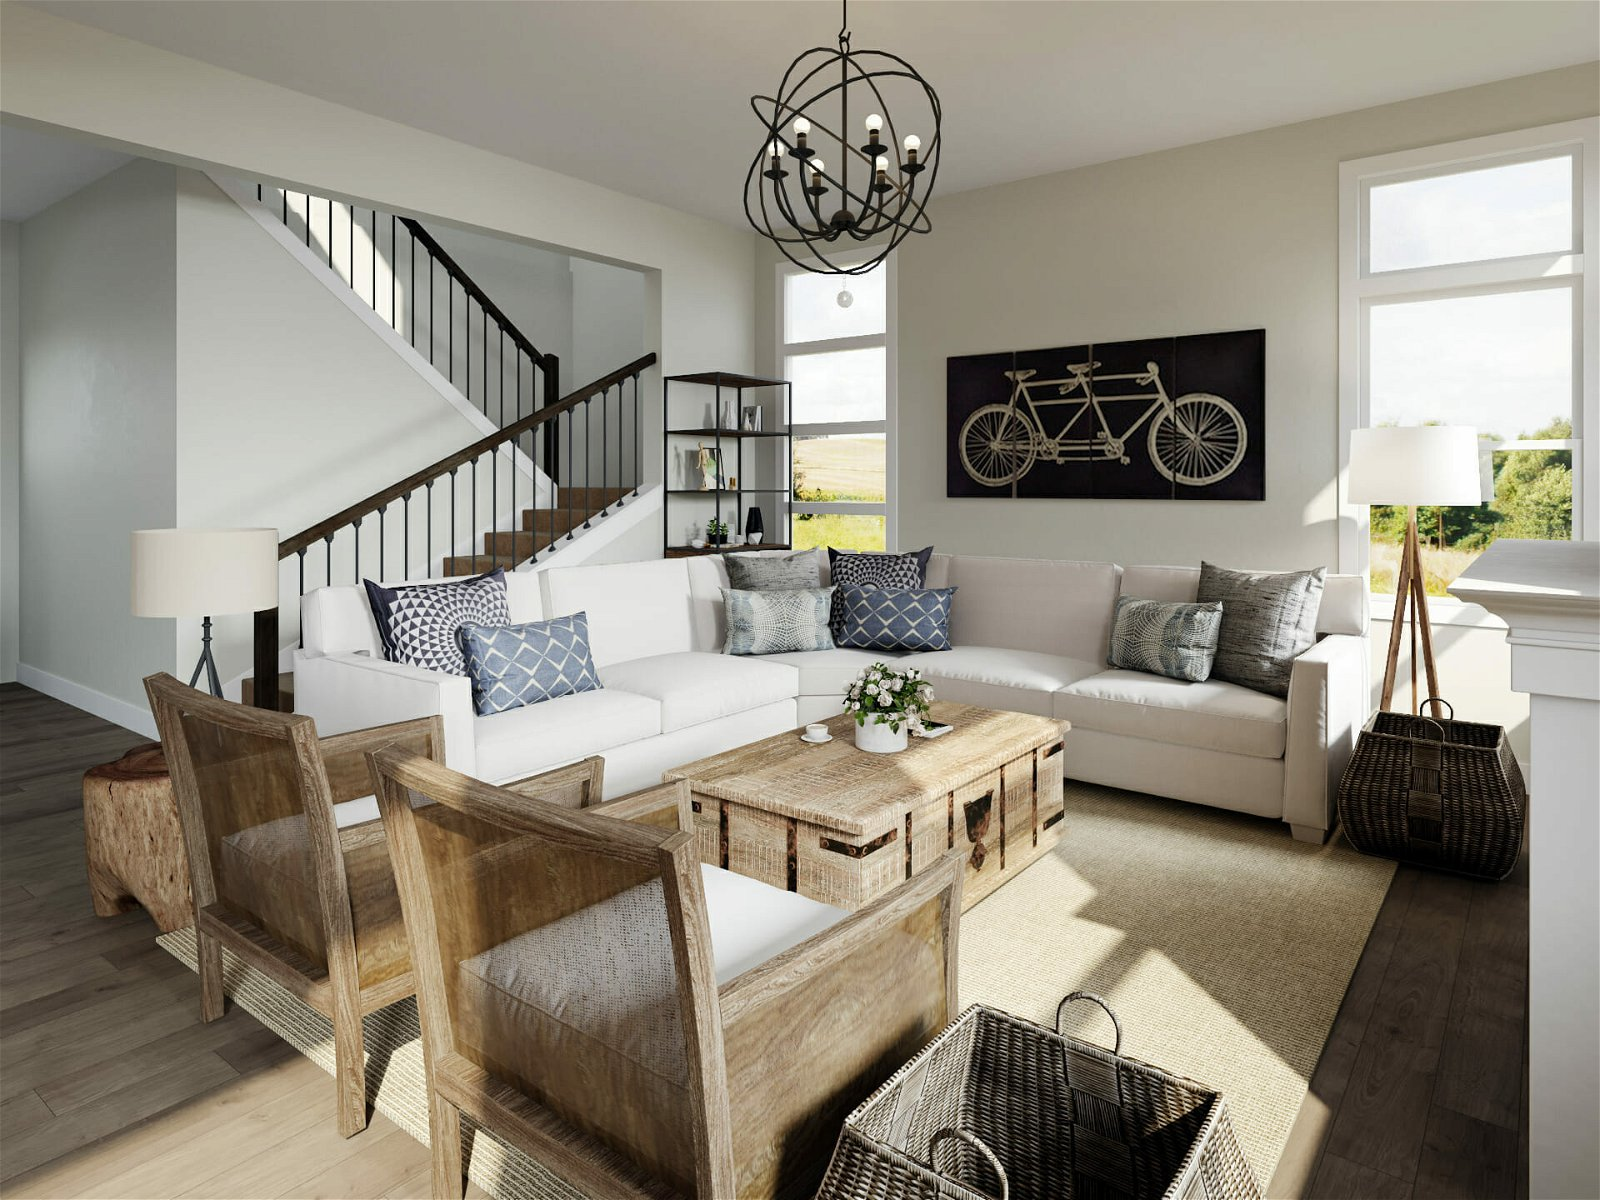 farmhouse interior design: what you need to know to achieve the